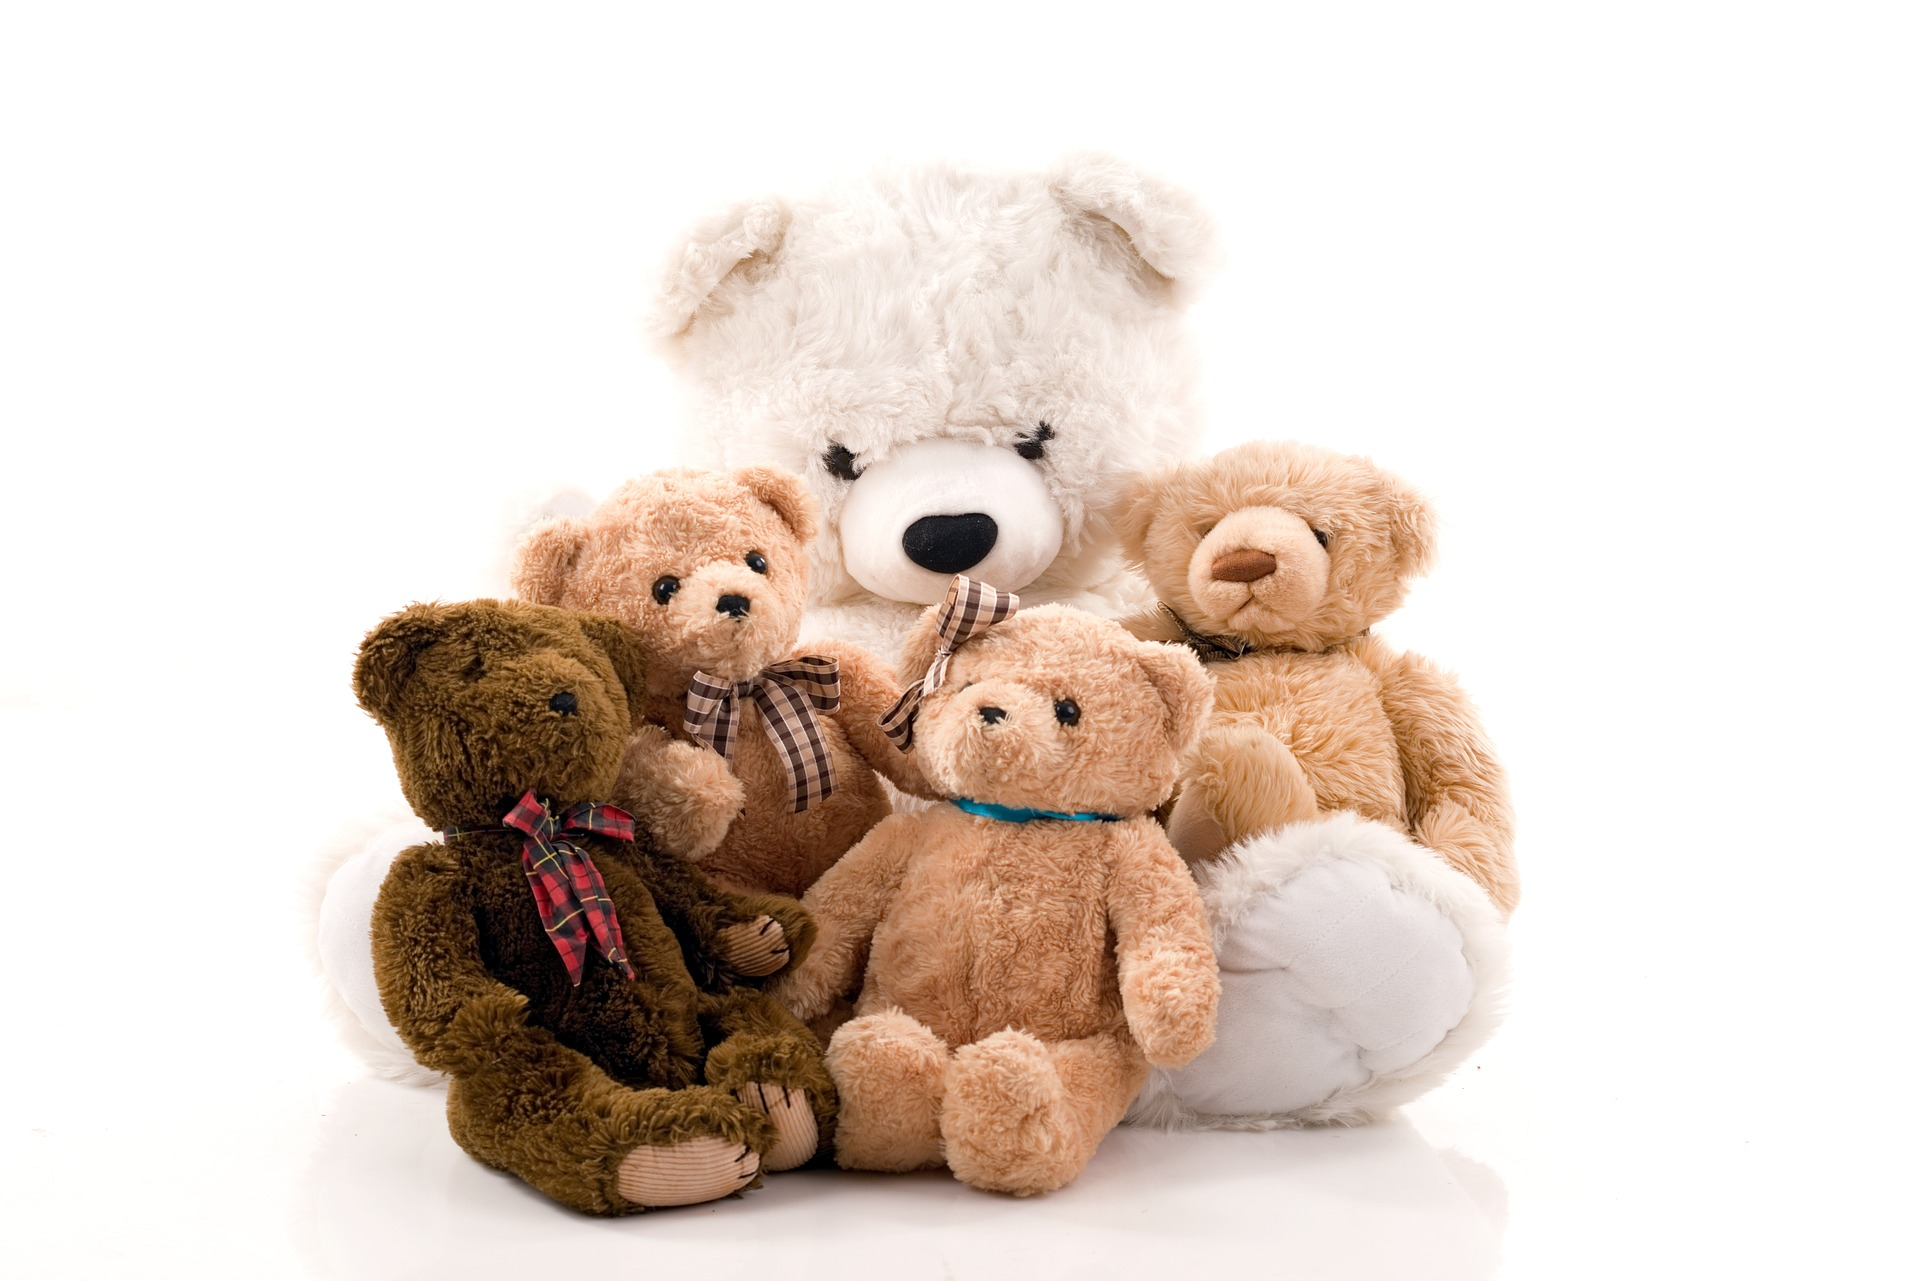 Teddy bears from childhood